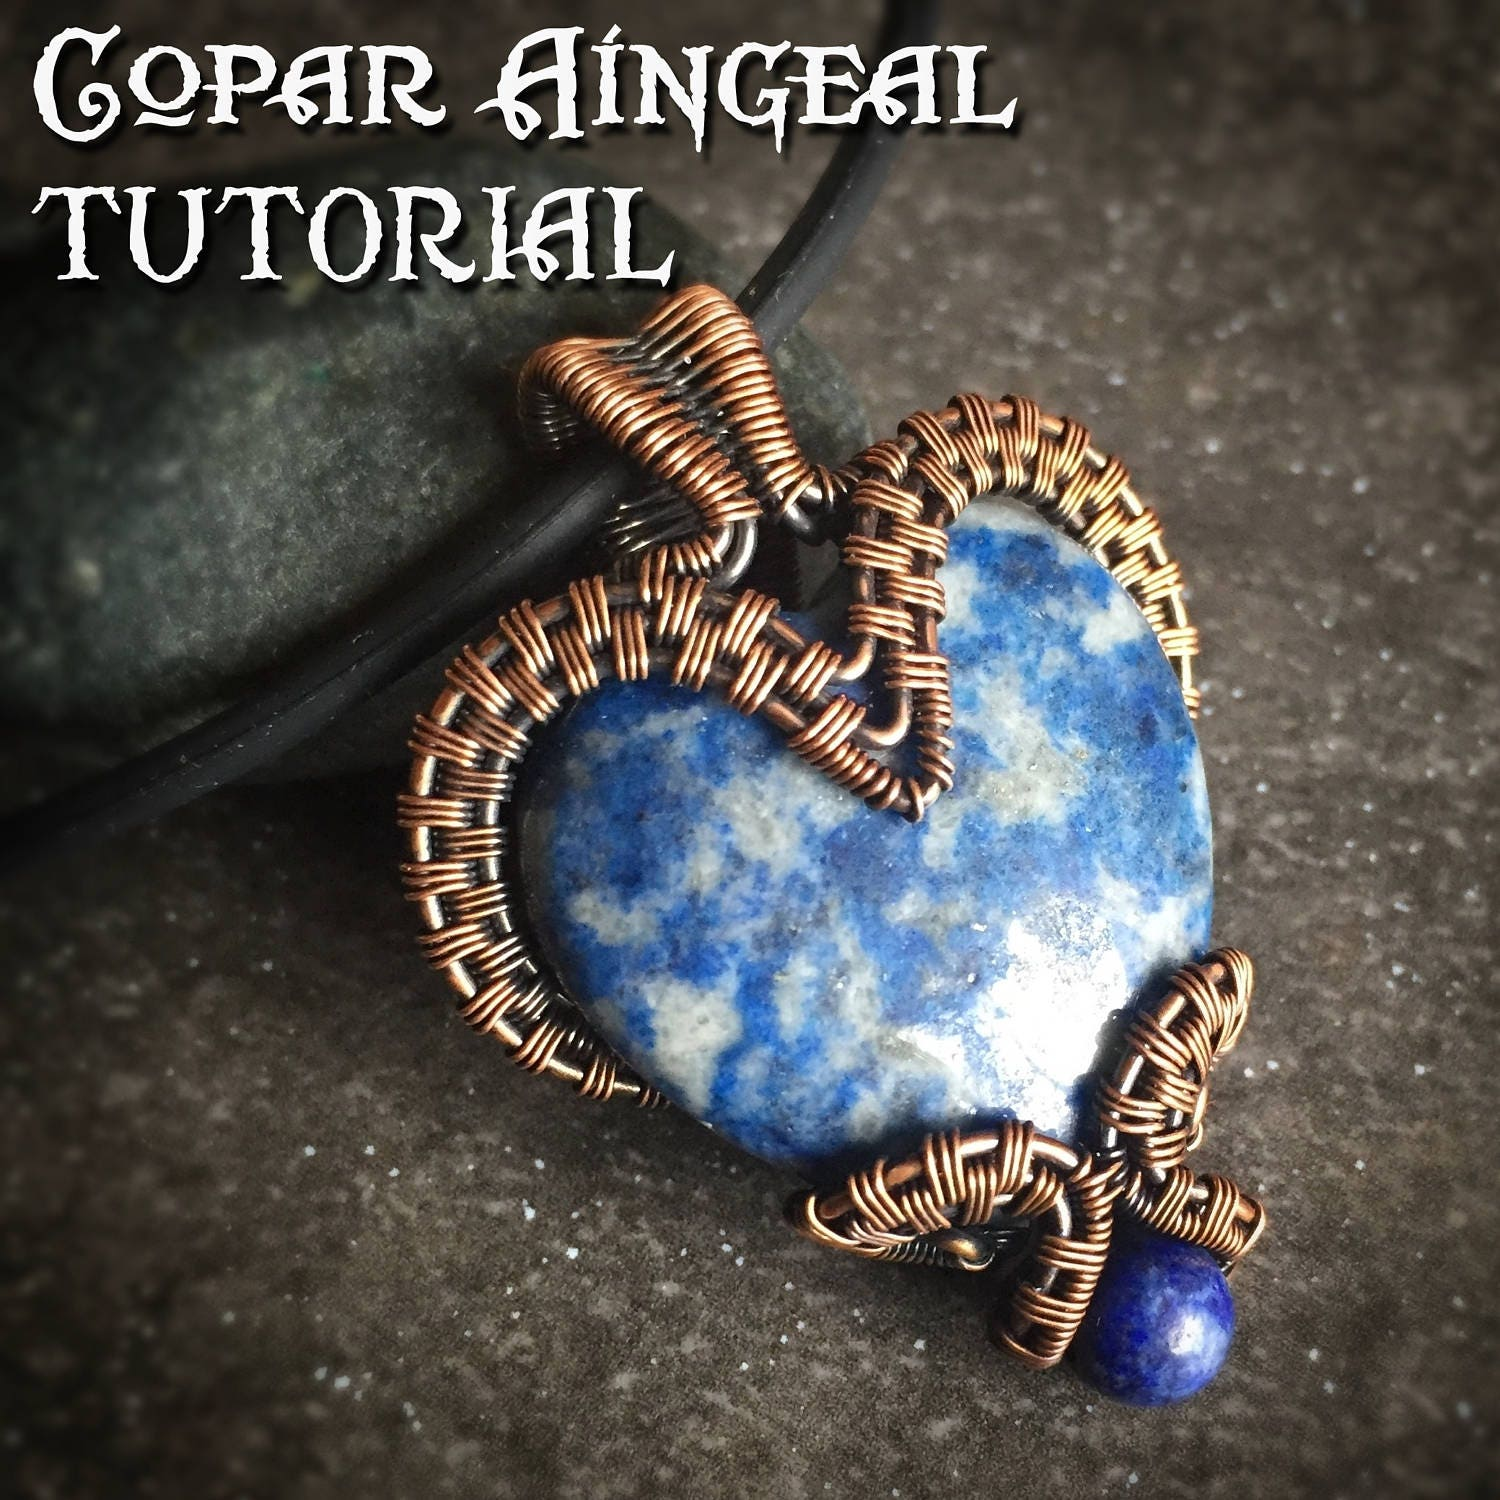 Tutorial bottled heart pendant wire wrapping jewelry pattern this is a digital file baditri Images